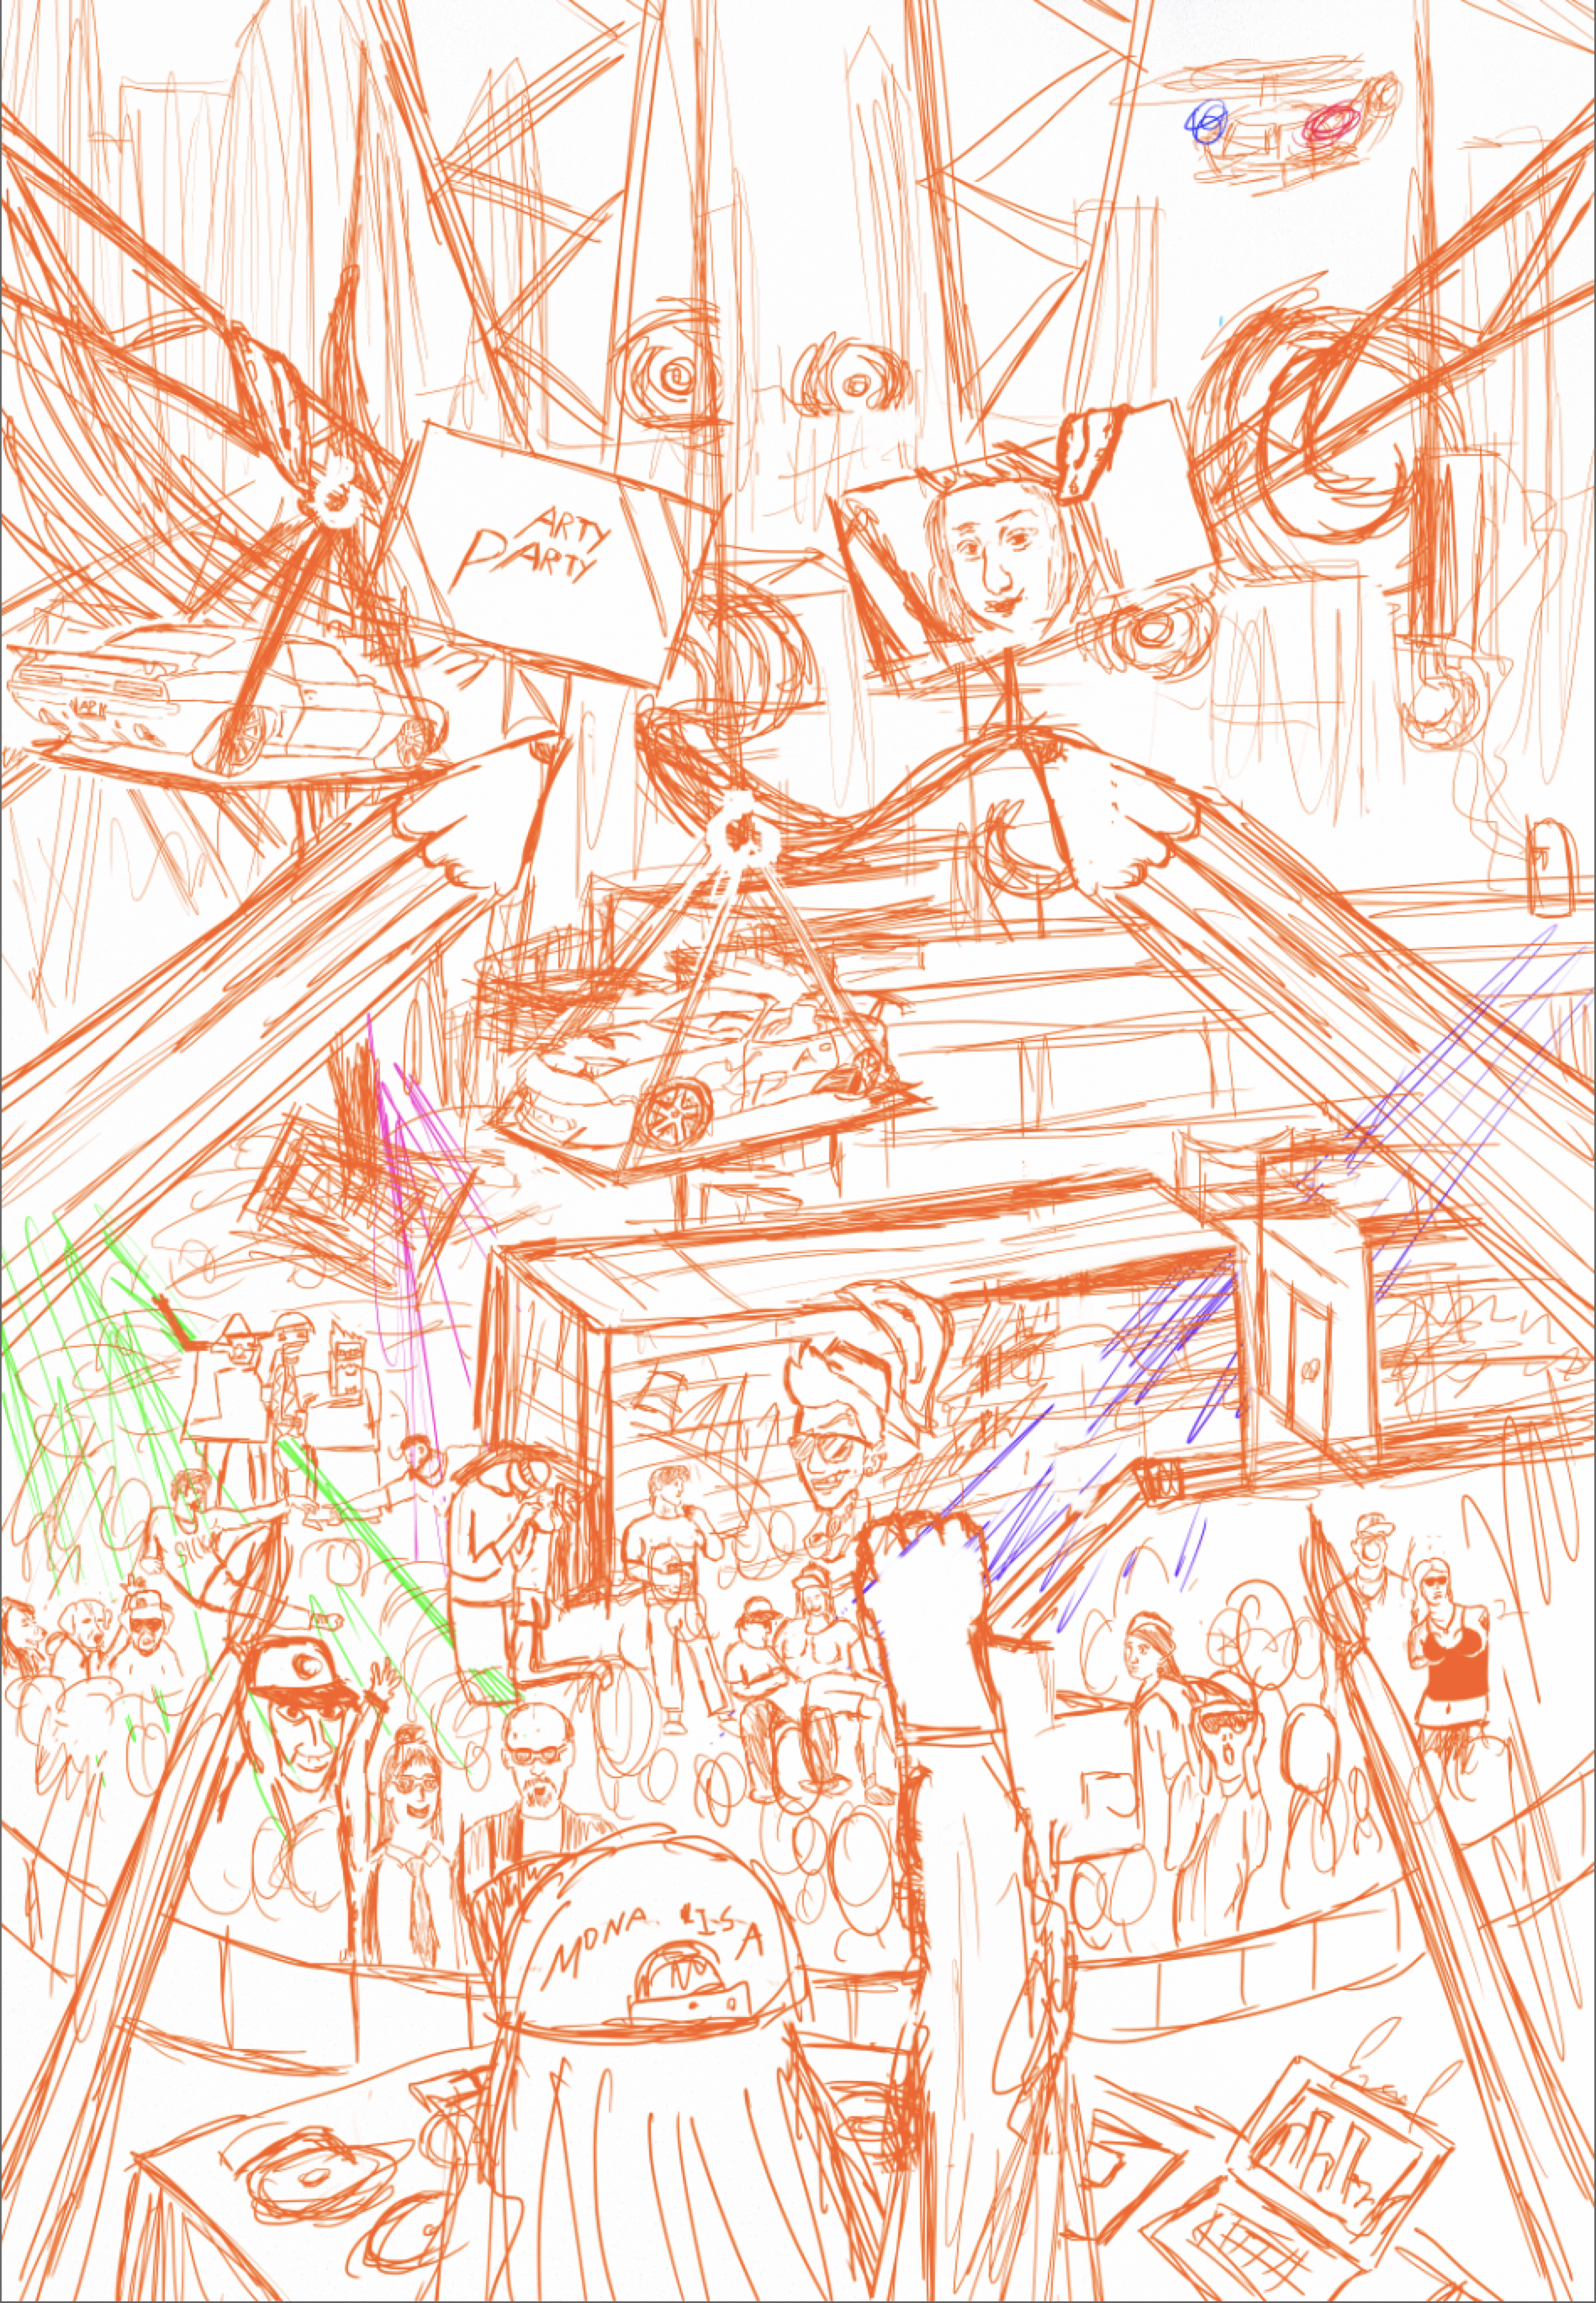 Epic Arty Party Sketch